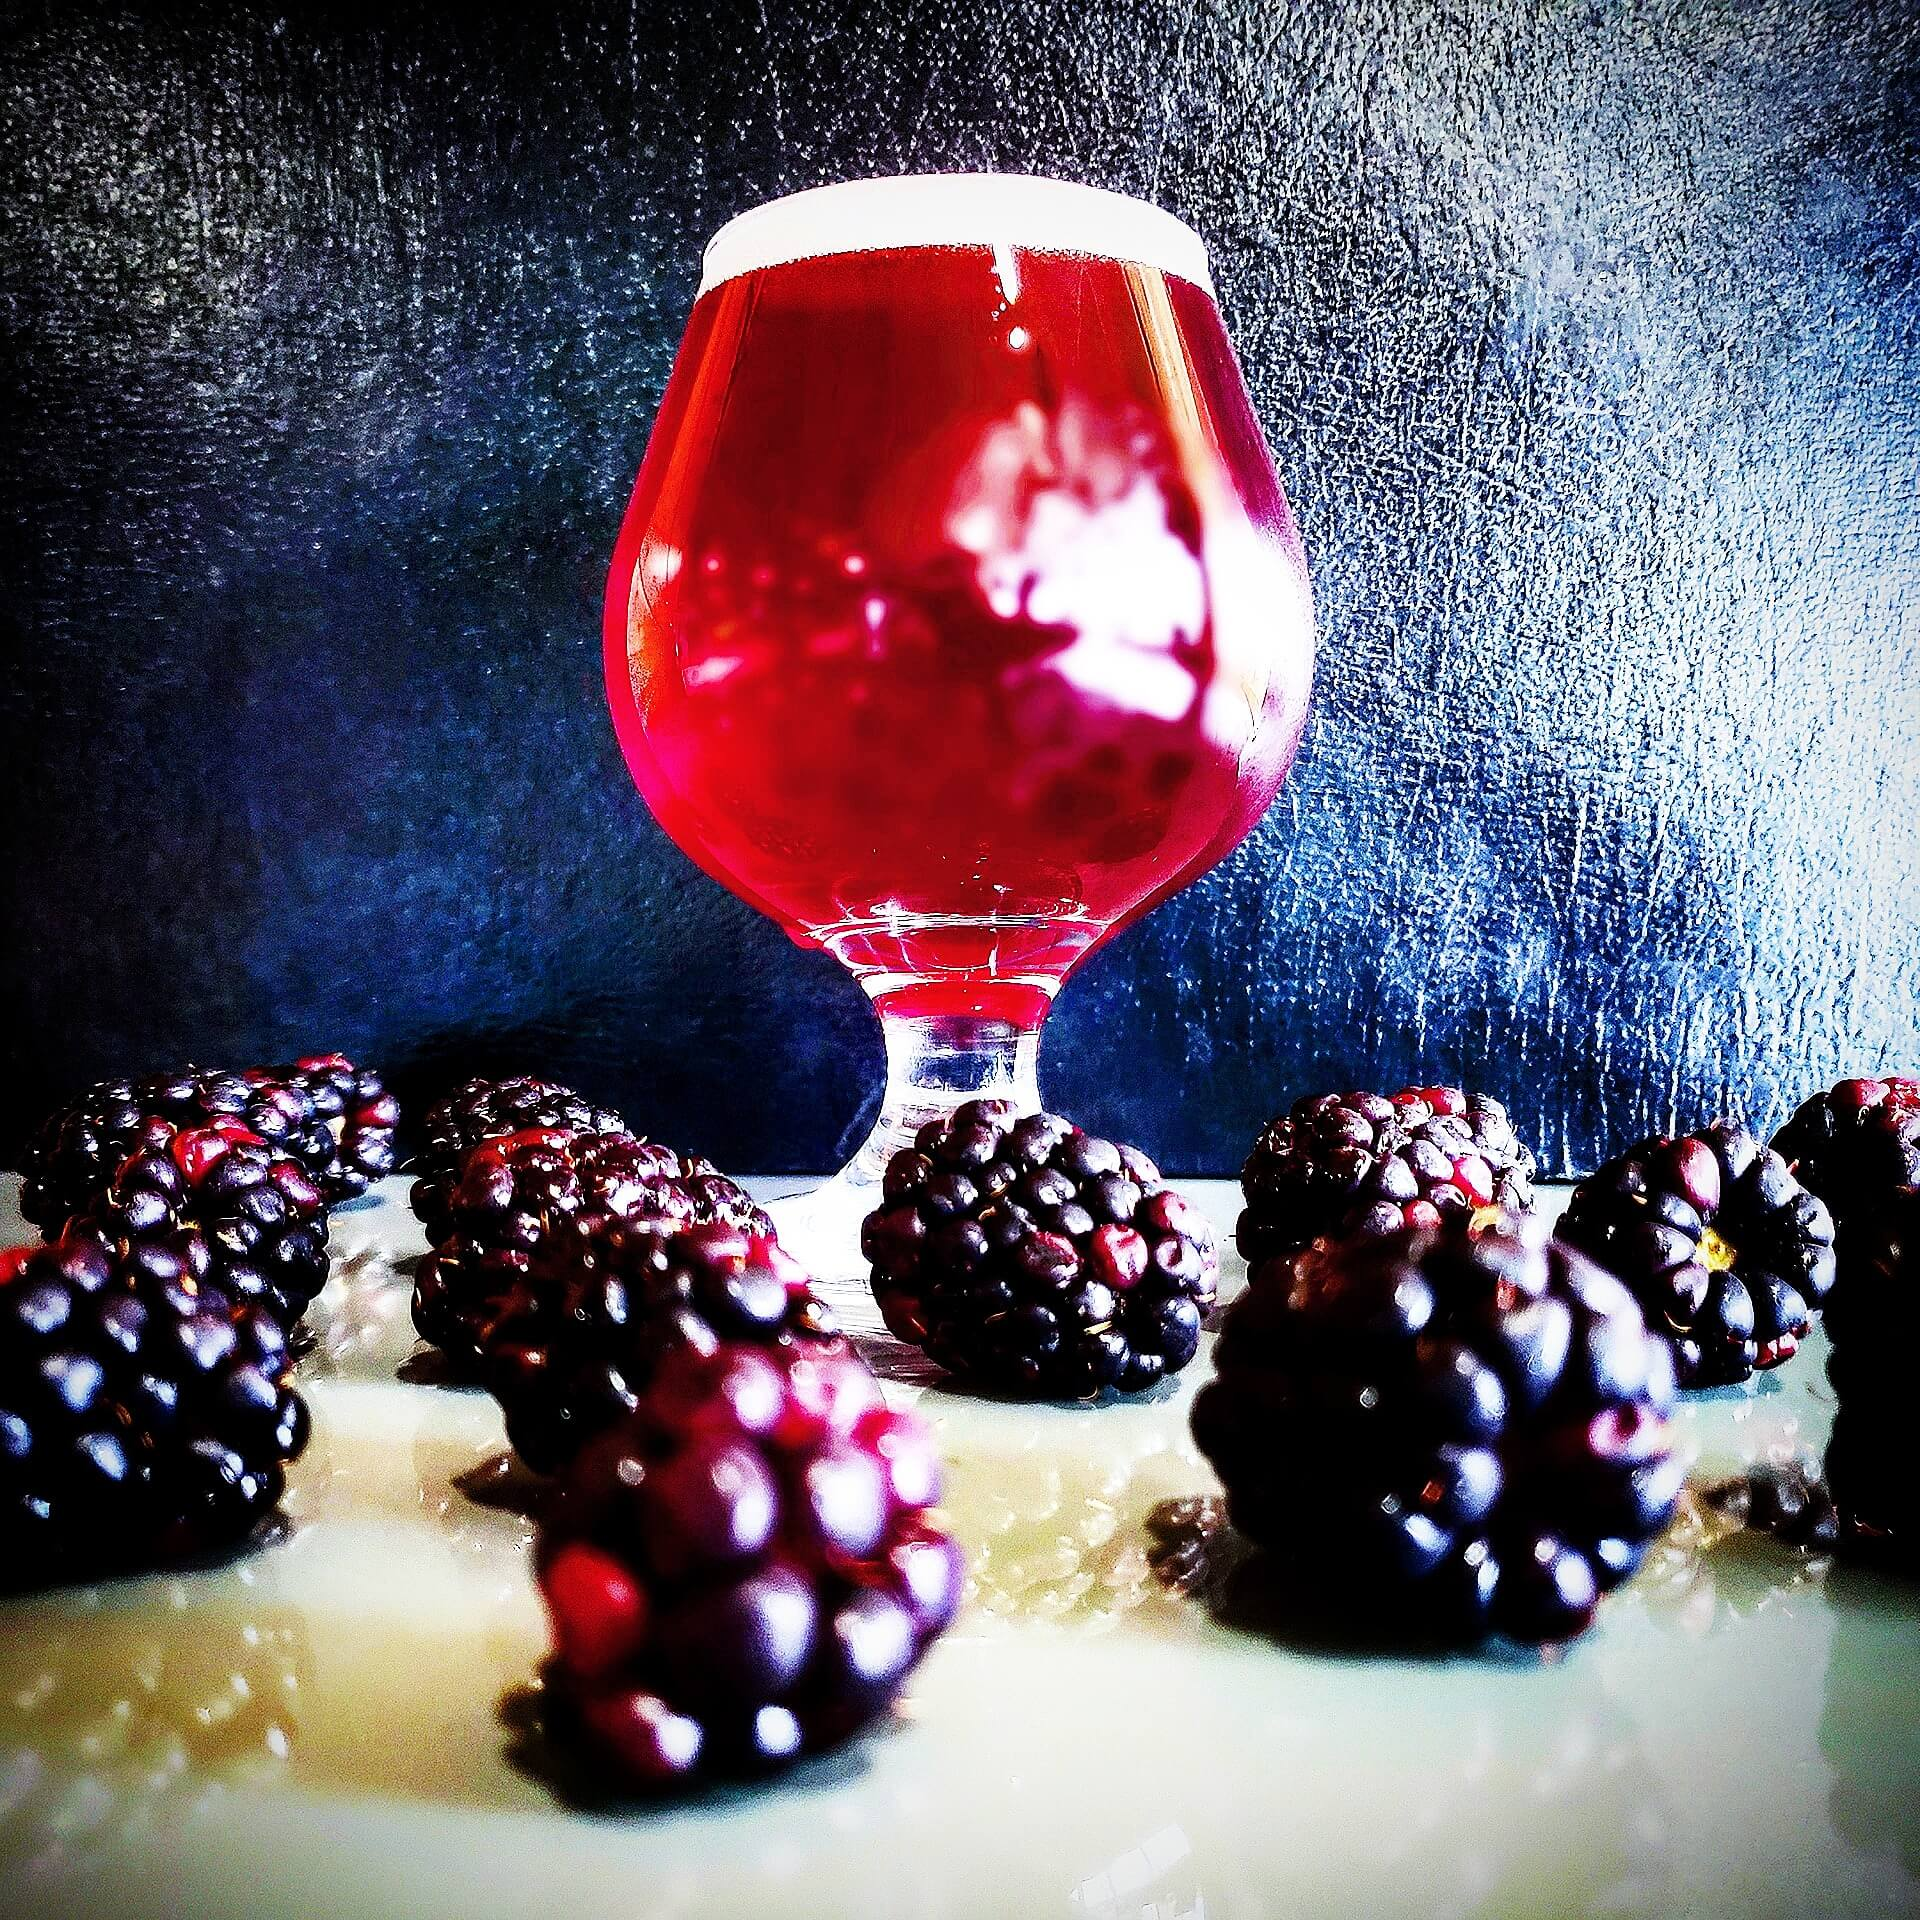 Bias Brewing Mure Mure Blackberry Sour